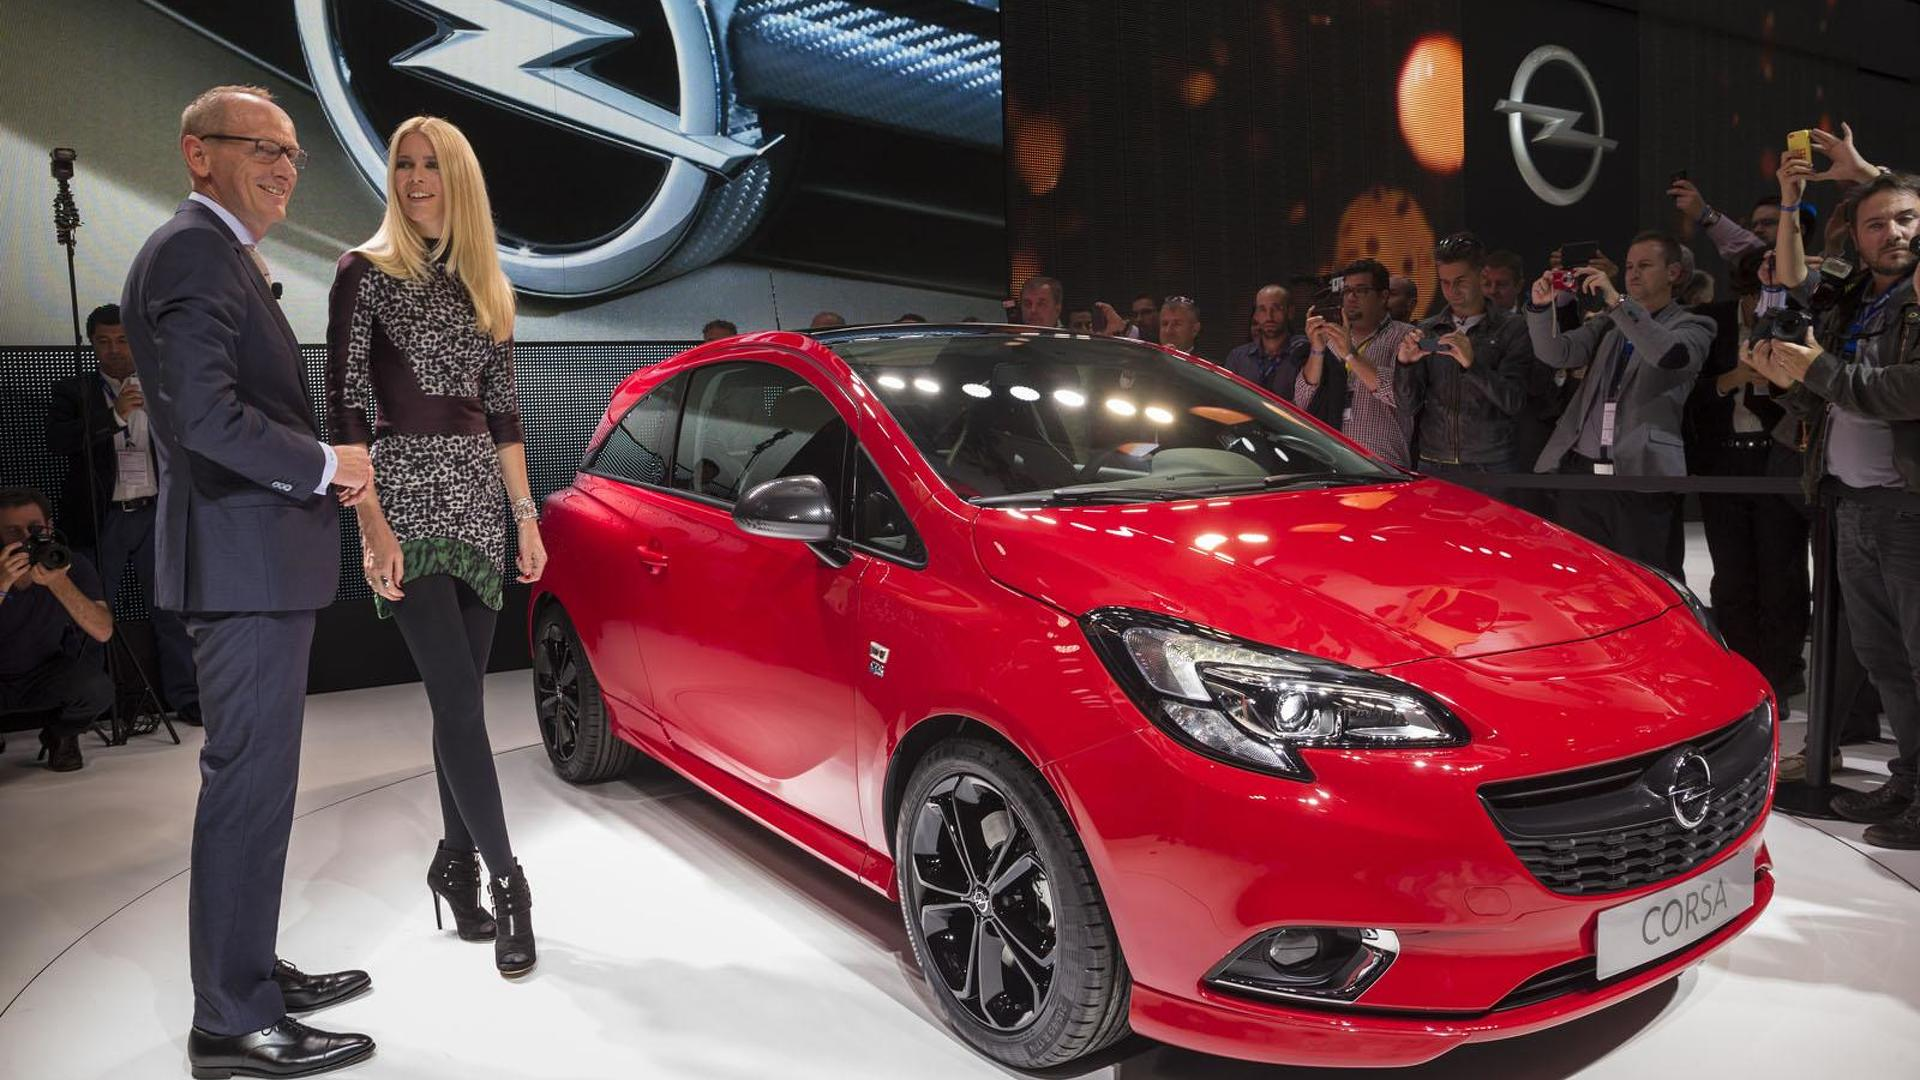 2015 opel vauxhall corsa unveiled in paris - Opel Corsa Color Edition 2015